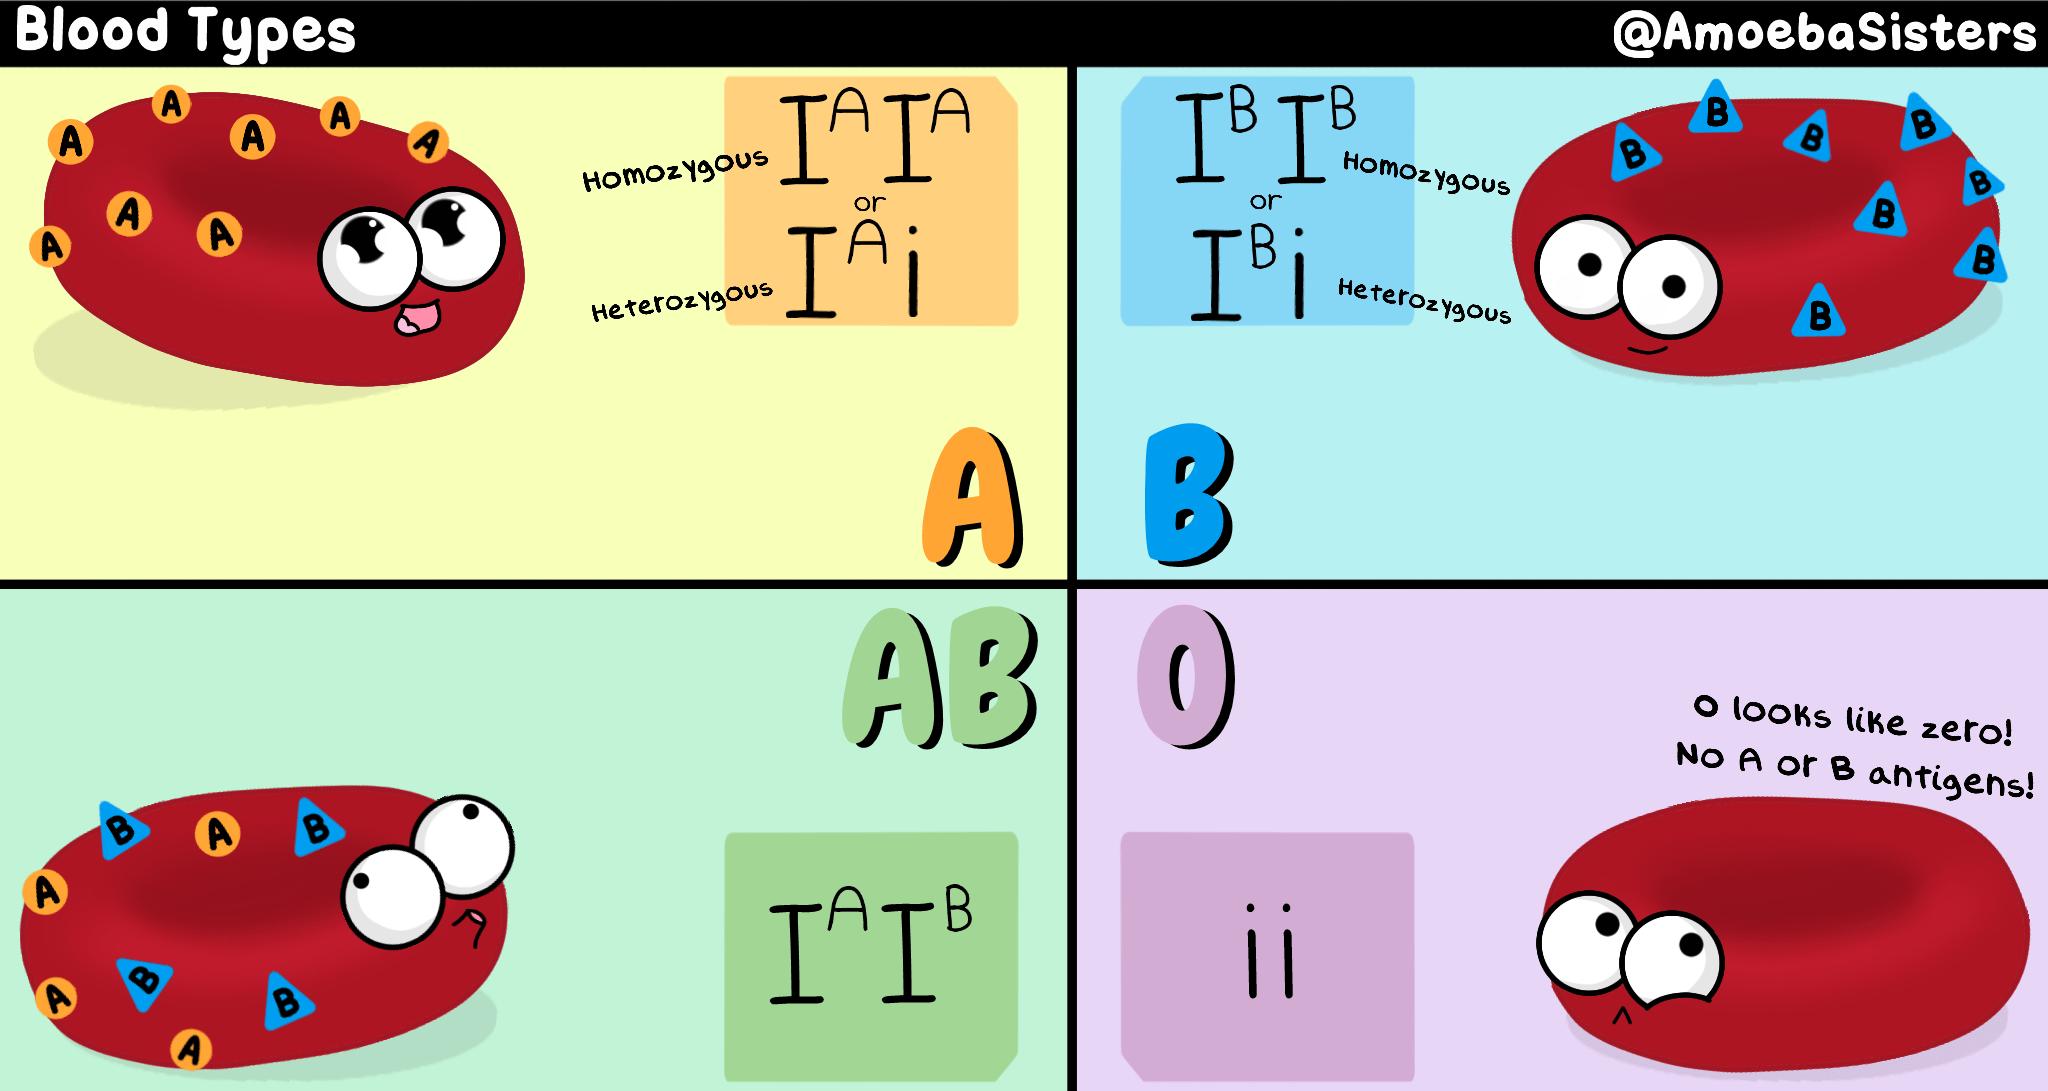 A Handy Blood Type Chart With The Genotypes Phenotypes